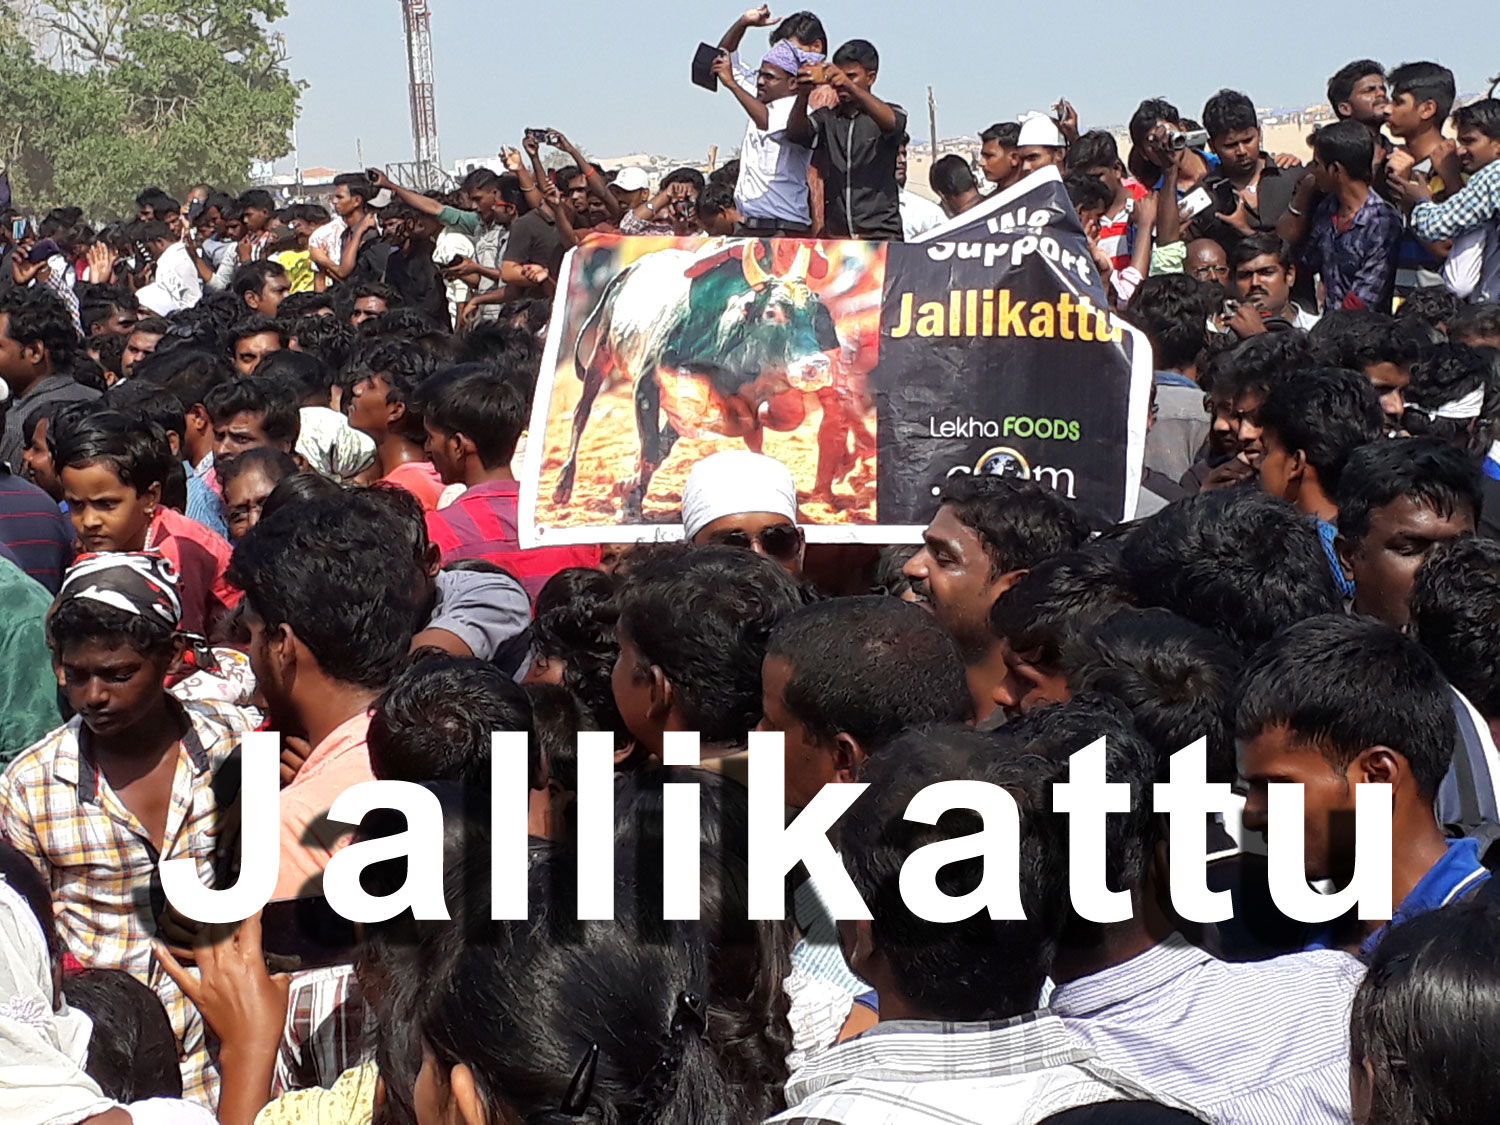 crowd marching in support of Jallikattu